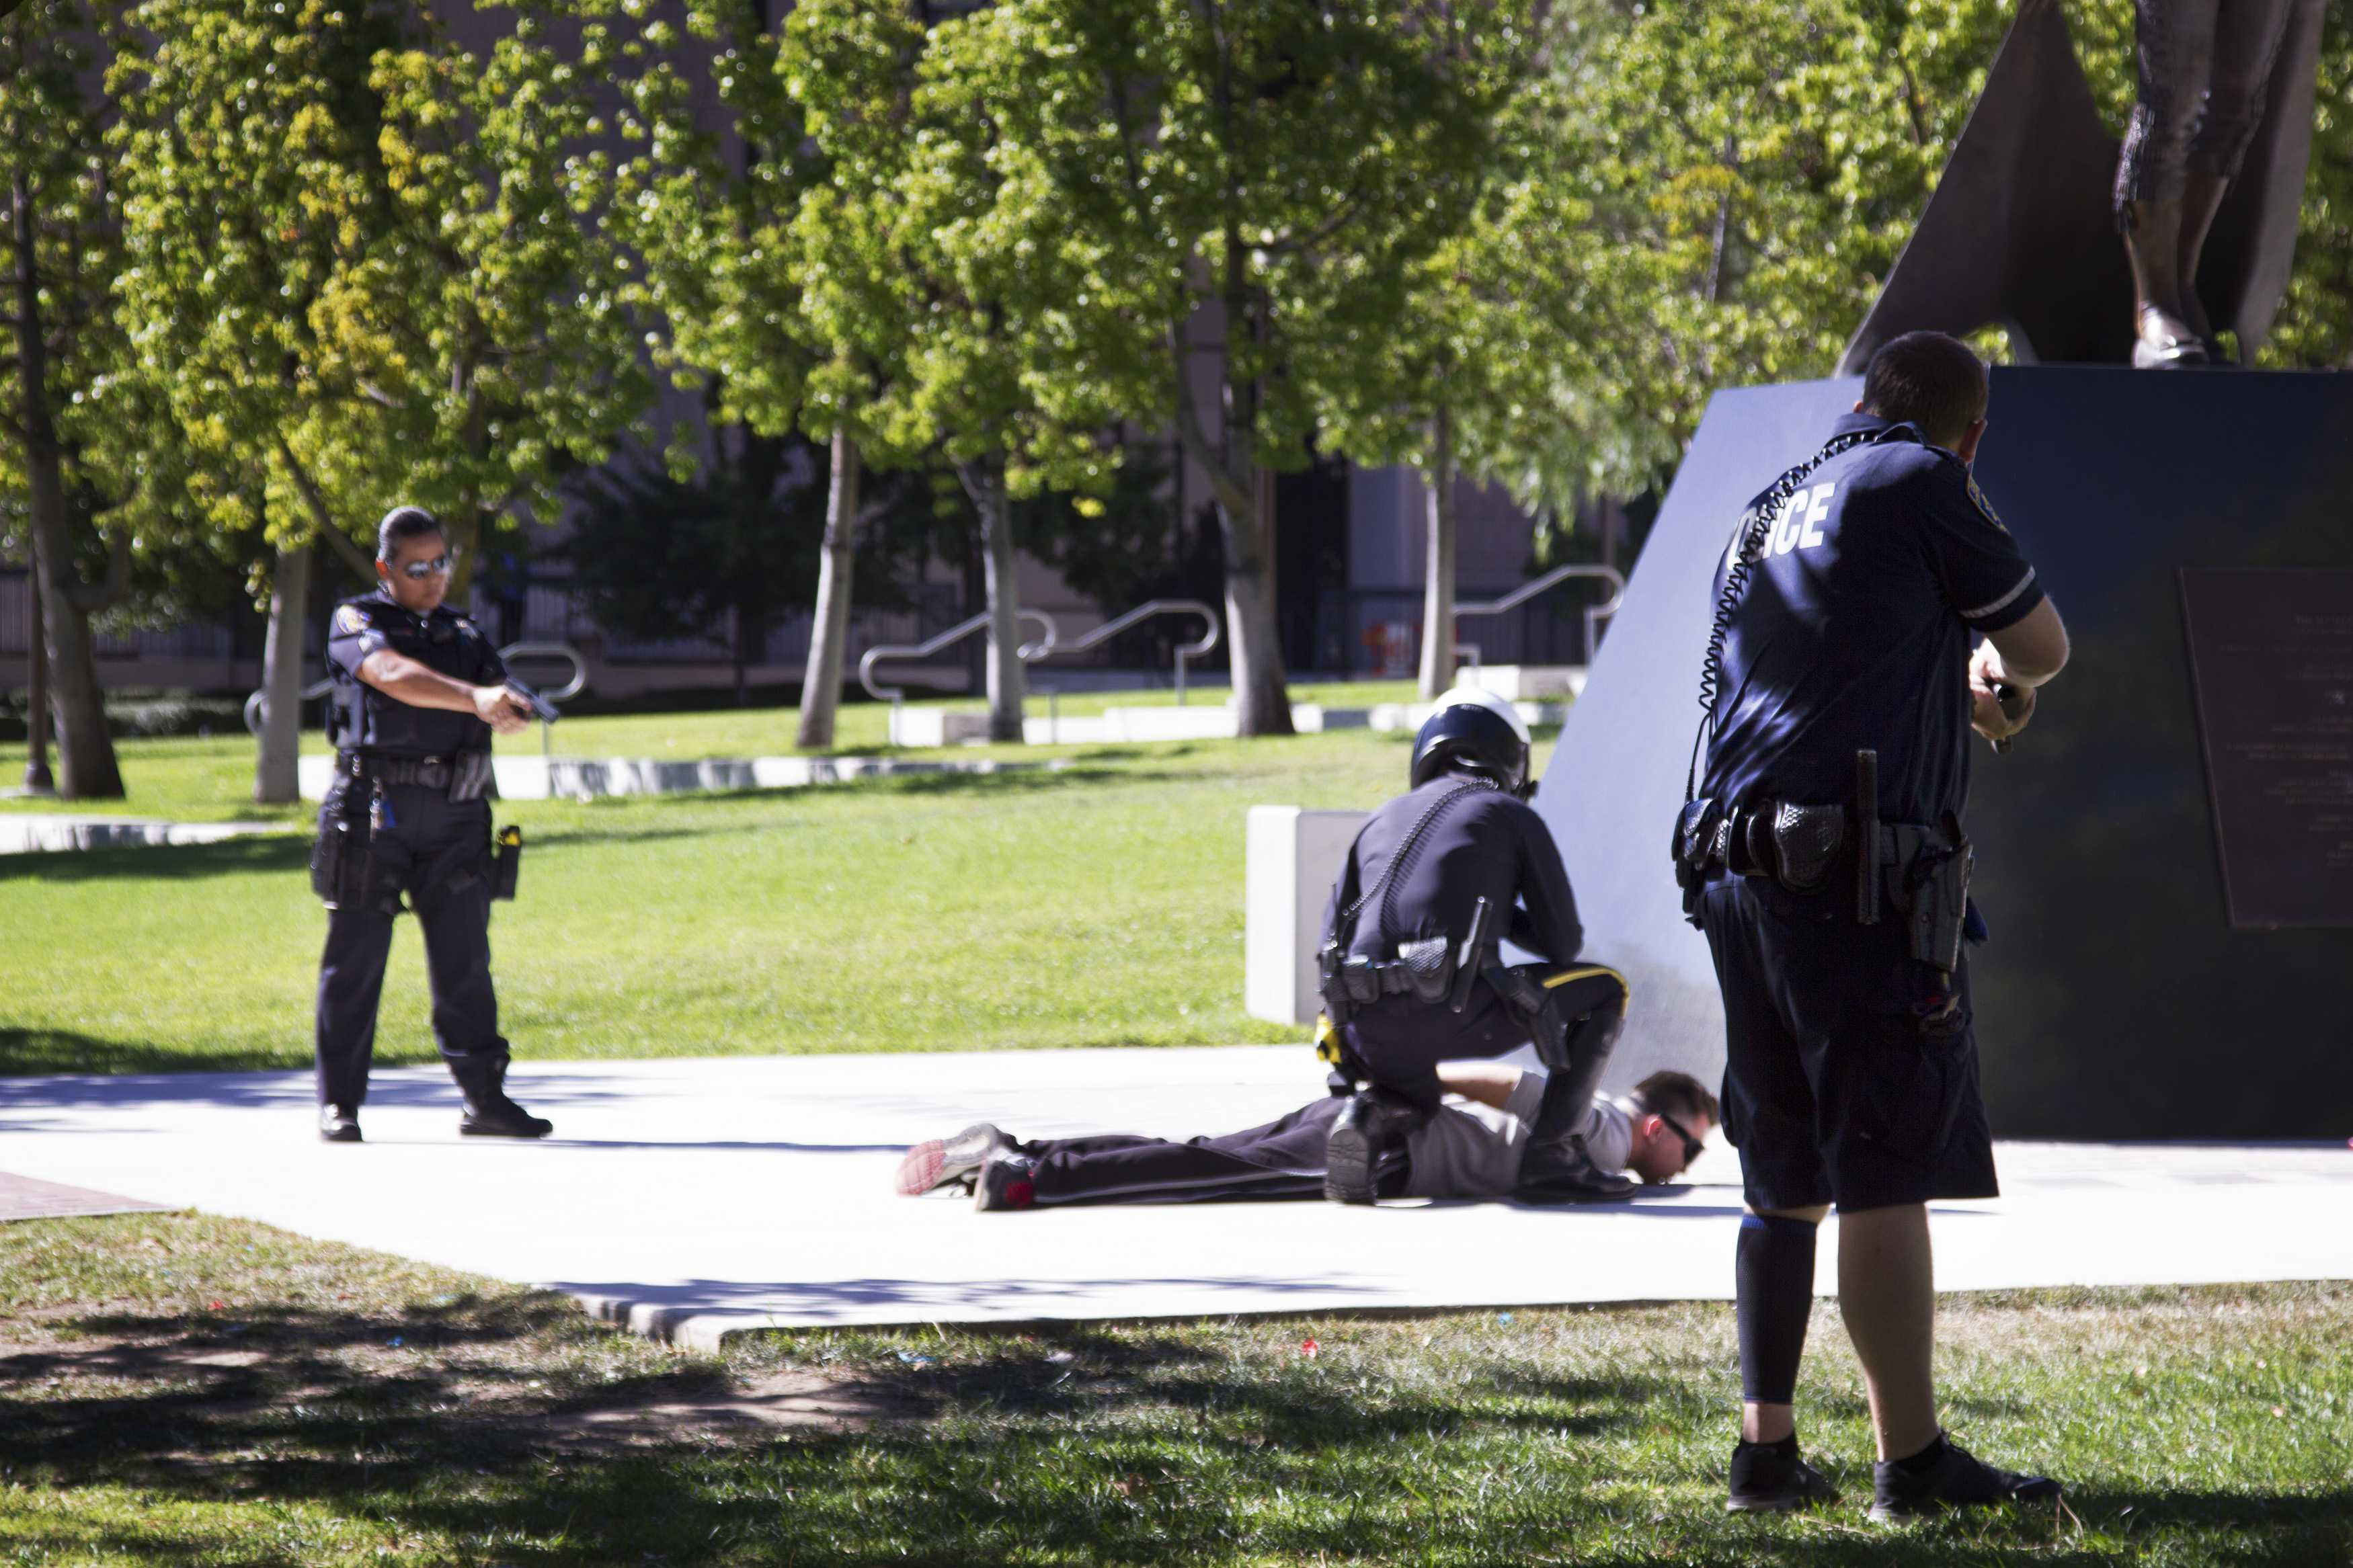 police+surround+suspect+on+CSUN+campus